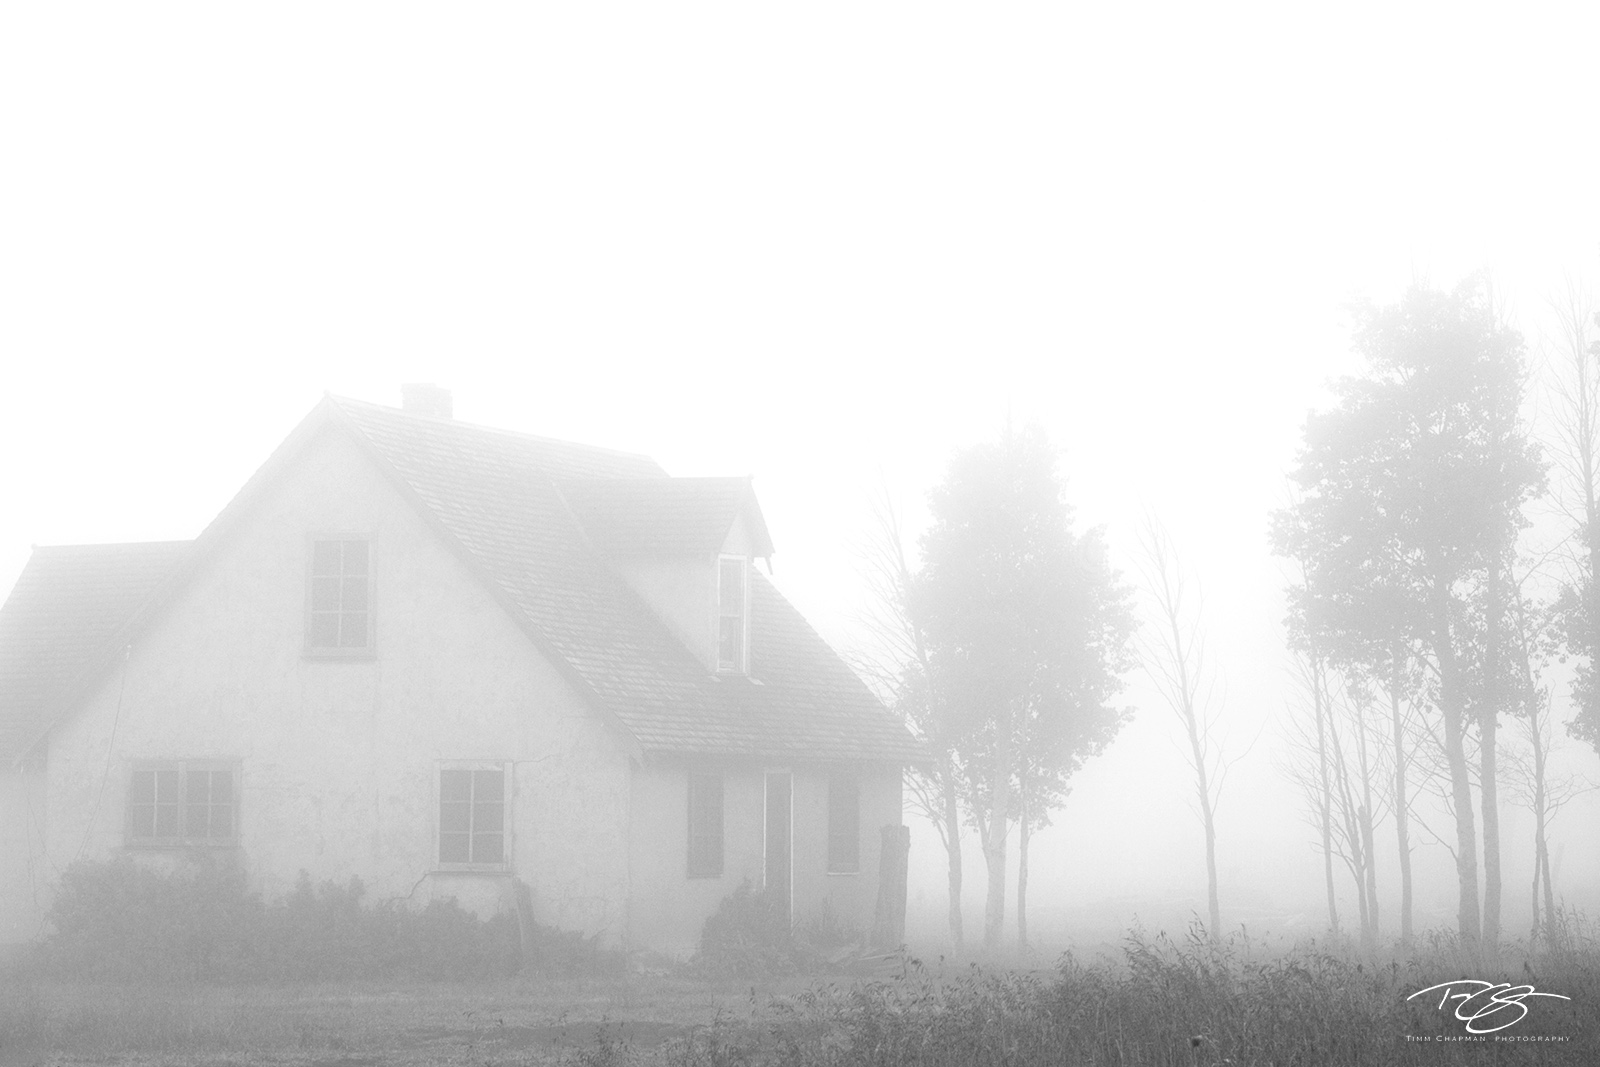 black and white, monochrome, derelict, ghost town, ghost house, foggy, misty, eerie, thick fog, farmhouse, old house, old farm house, Mormon Row, Moulton, Tetons, solace, solitude, misty, quiet, photo